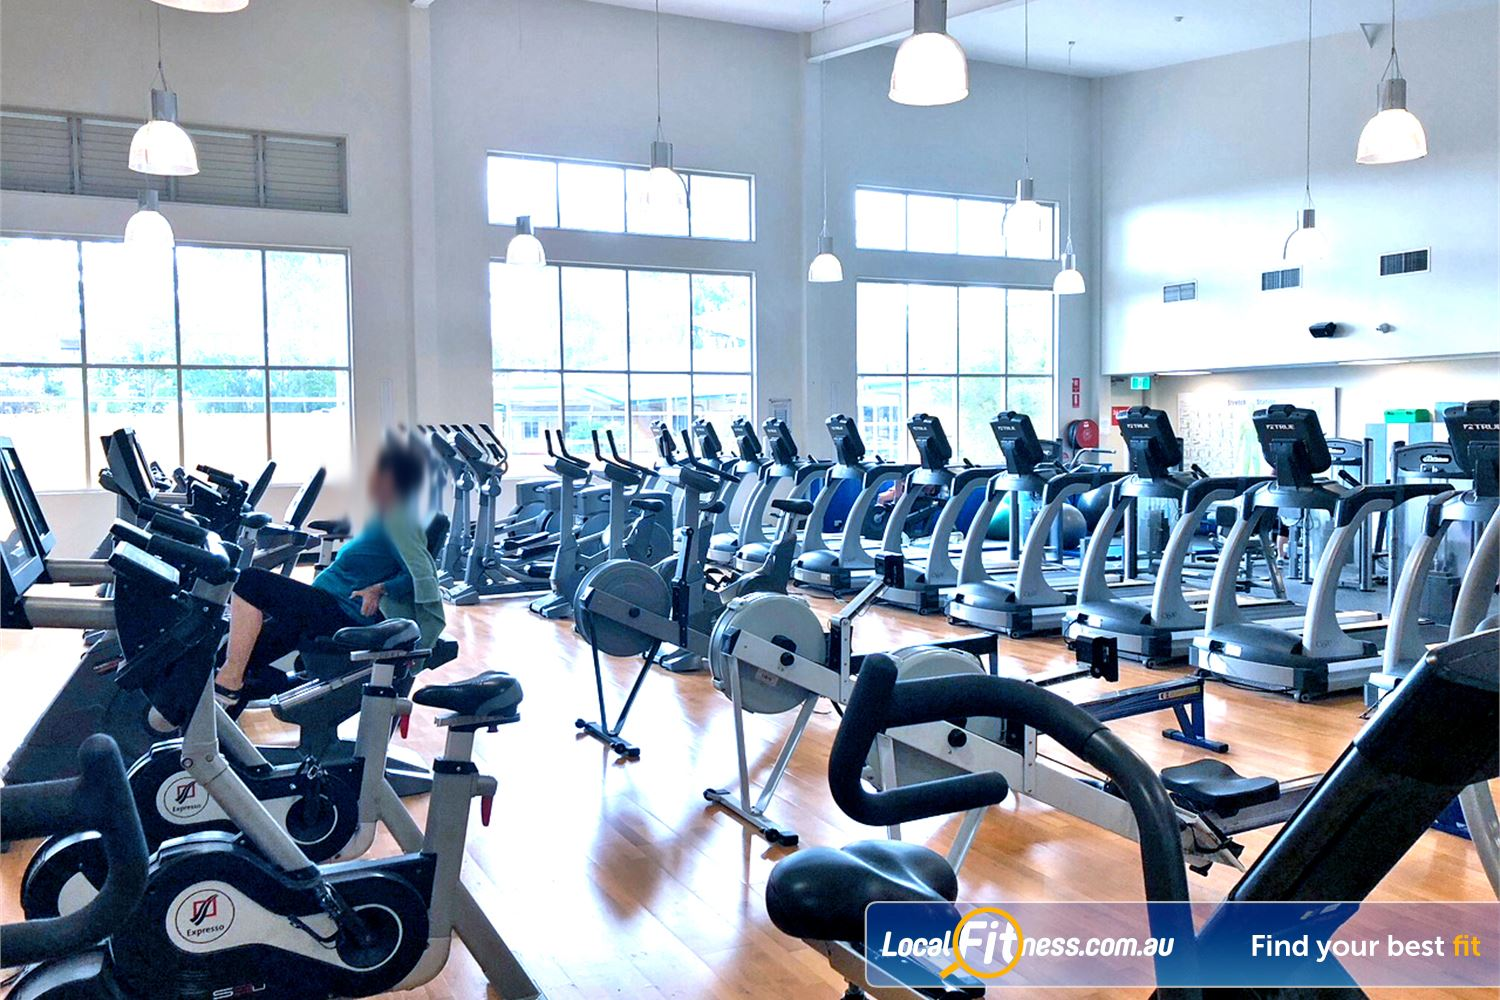 Albany Creek Leisure Centre Albany Creek Treadmills, cycle bikes, cross trainers, rowers and more.